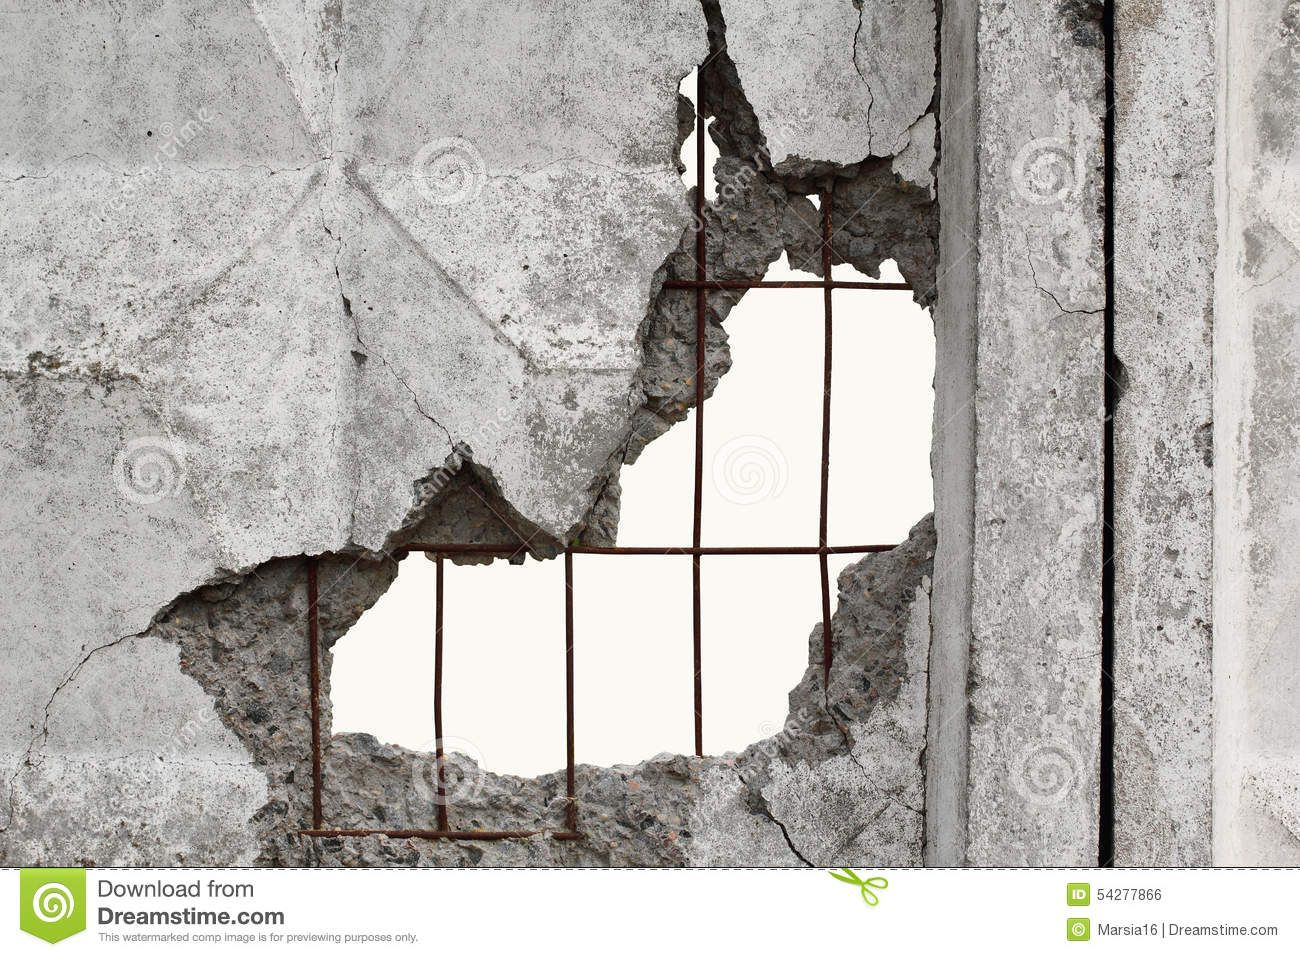 how to fix hole in concrete wall